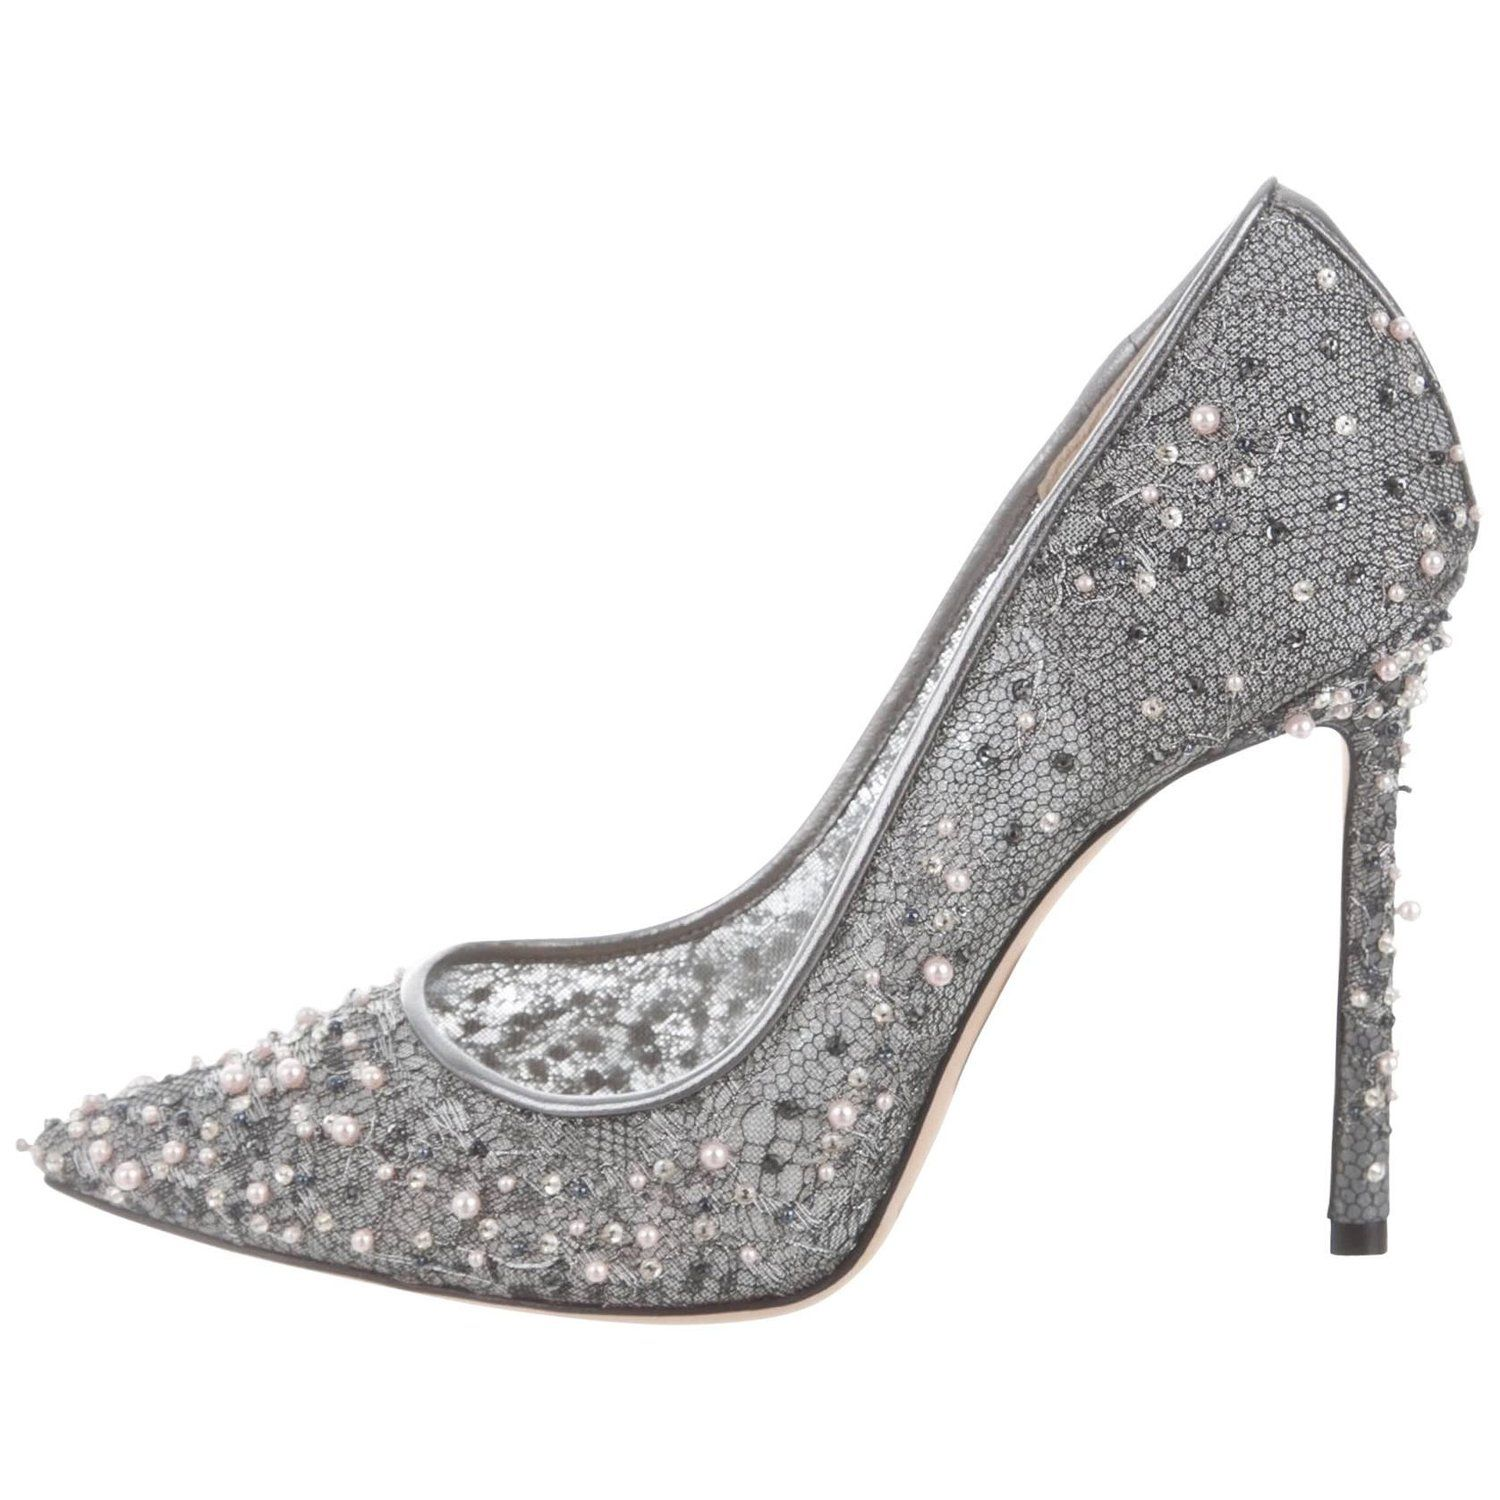 preview of great quality details for Jimmy Choo New Sold Out Silver Pearl High Heels Pumps in Box ...